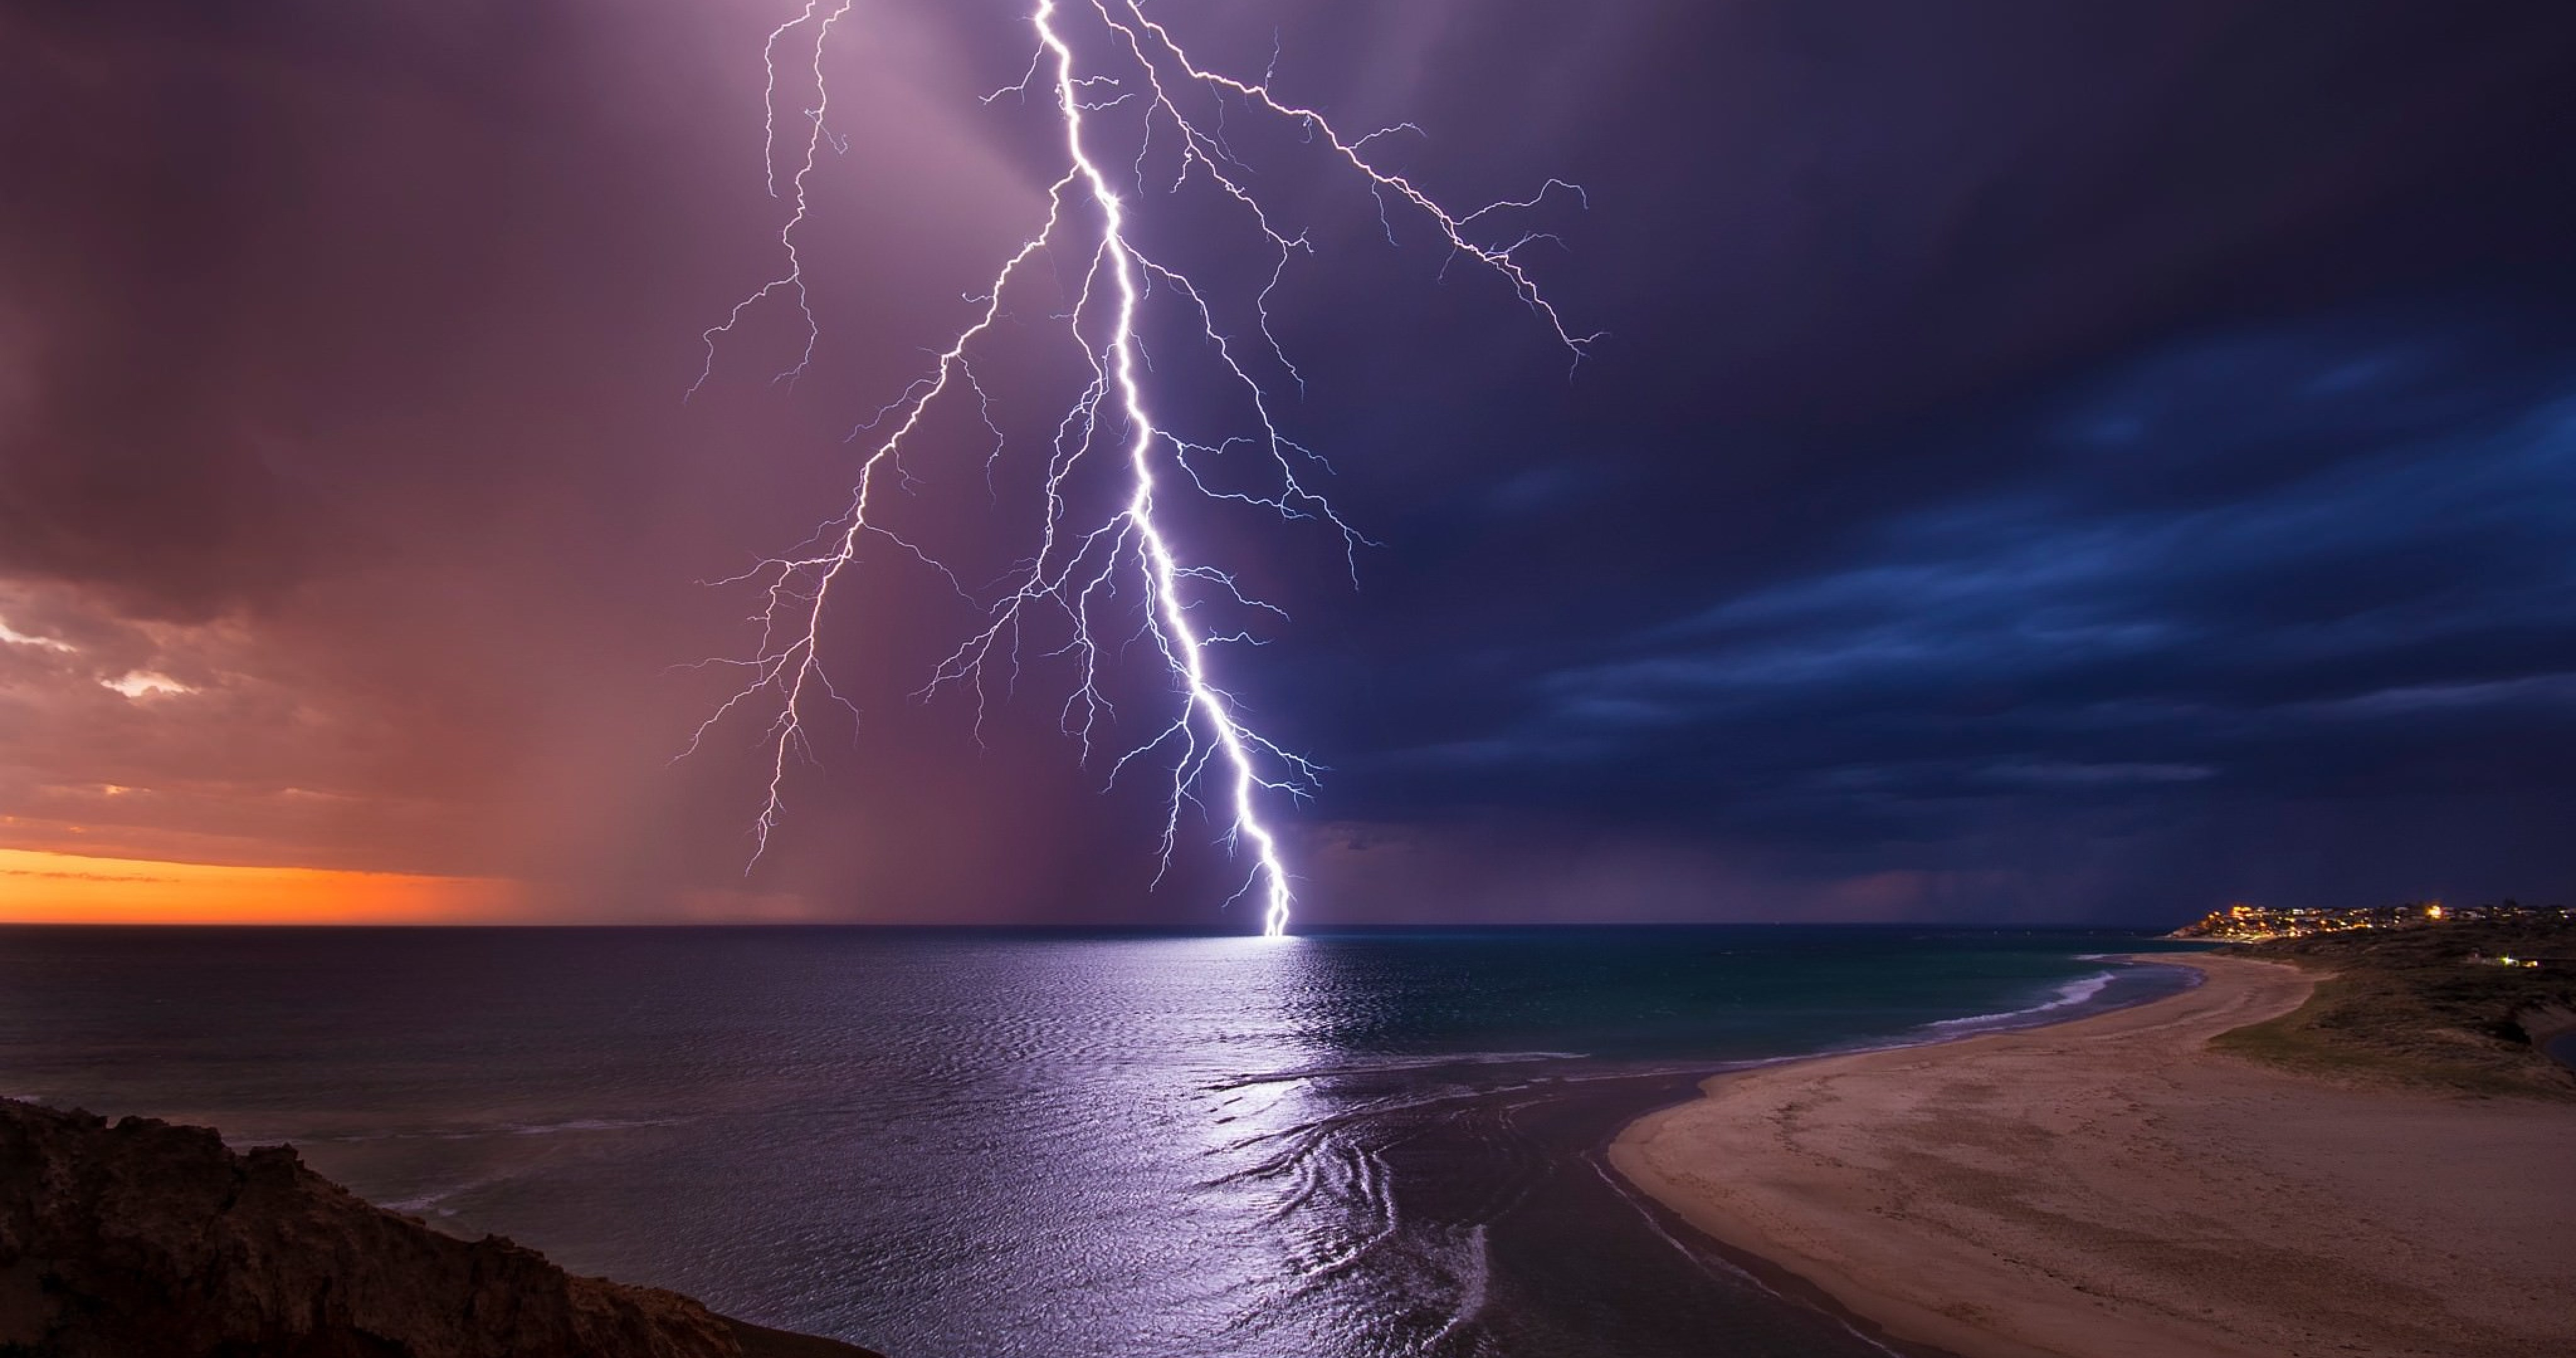 Australia night lightning 4k ultra hd wallpaper high - Hd 4k resolution wallpaper ...